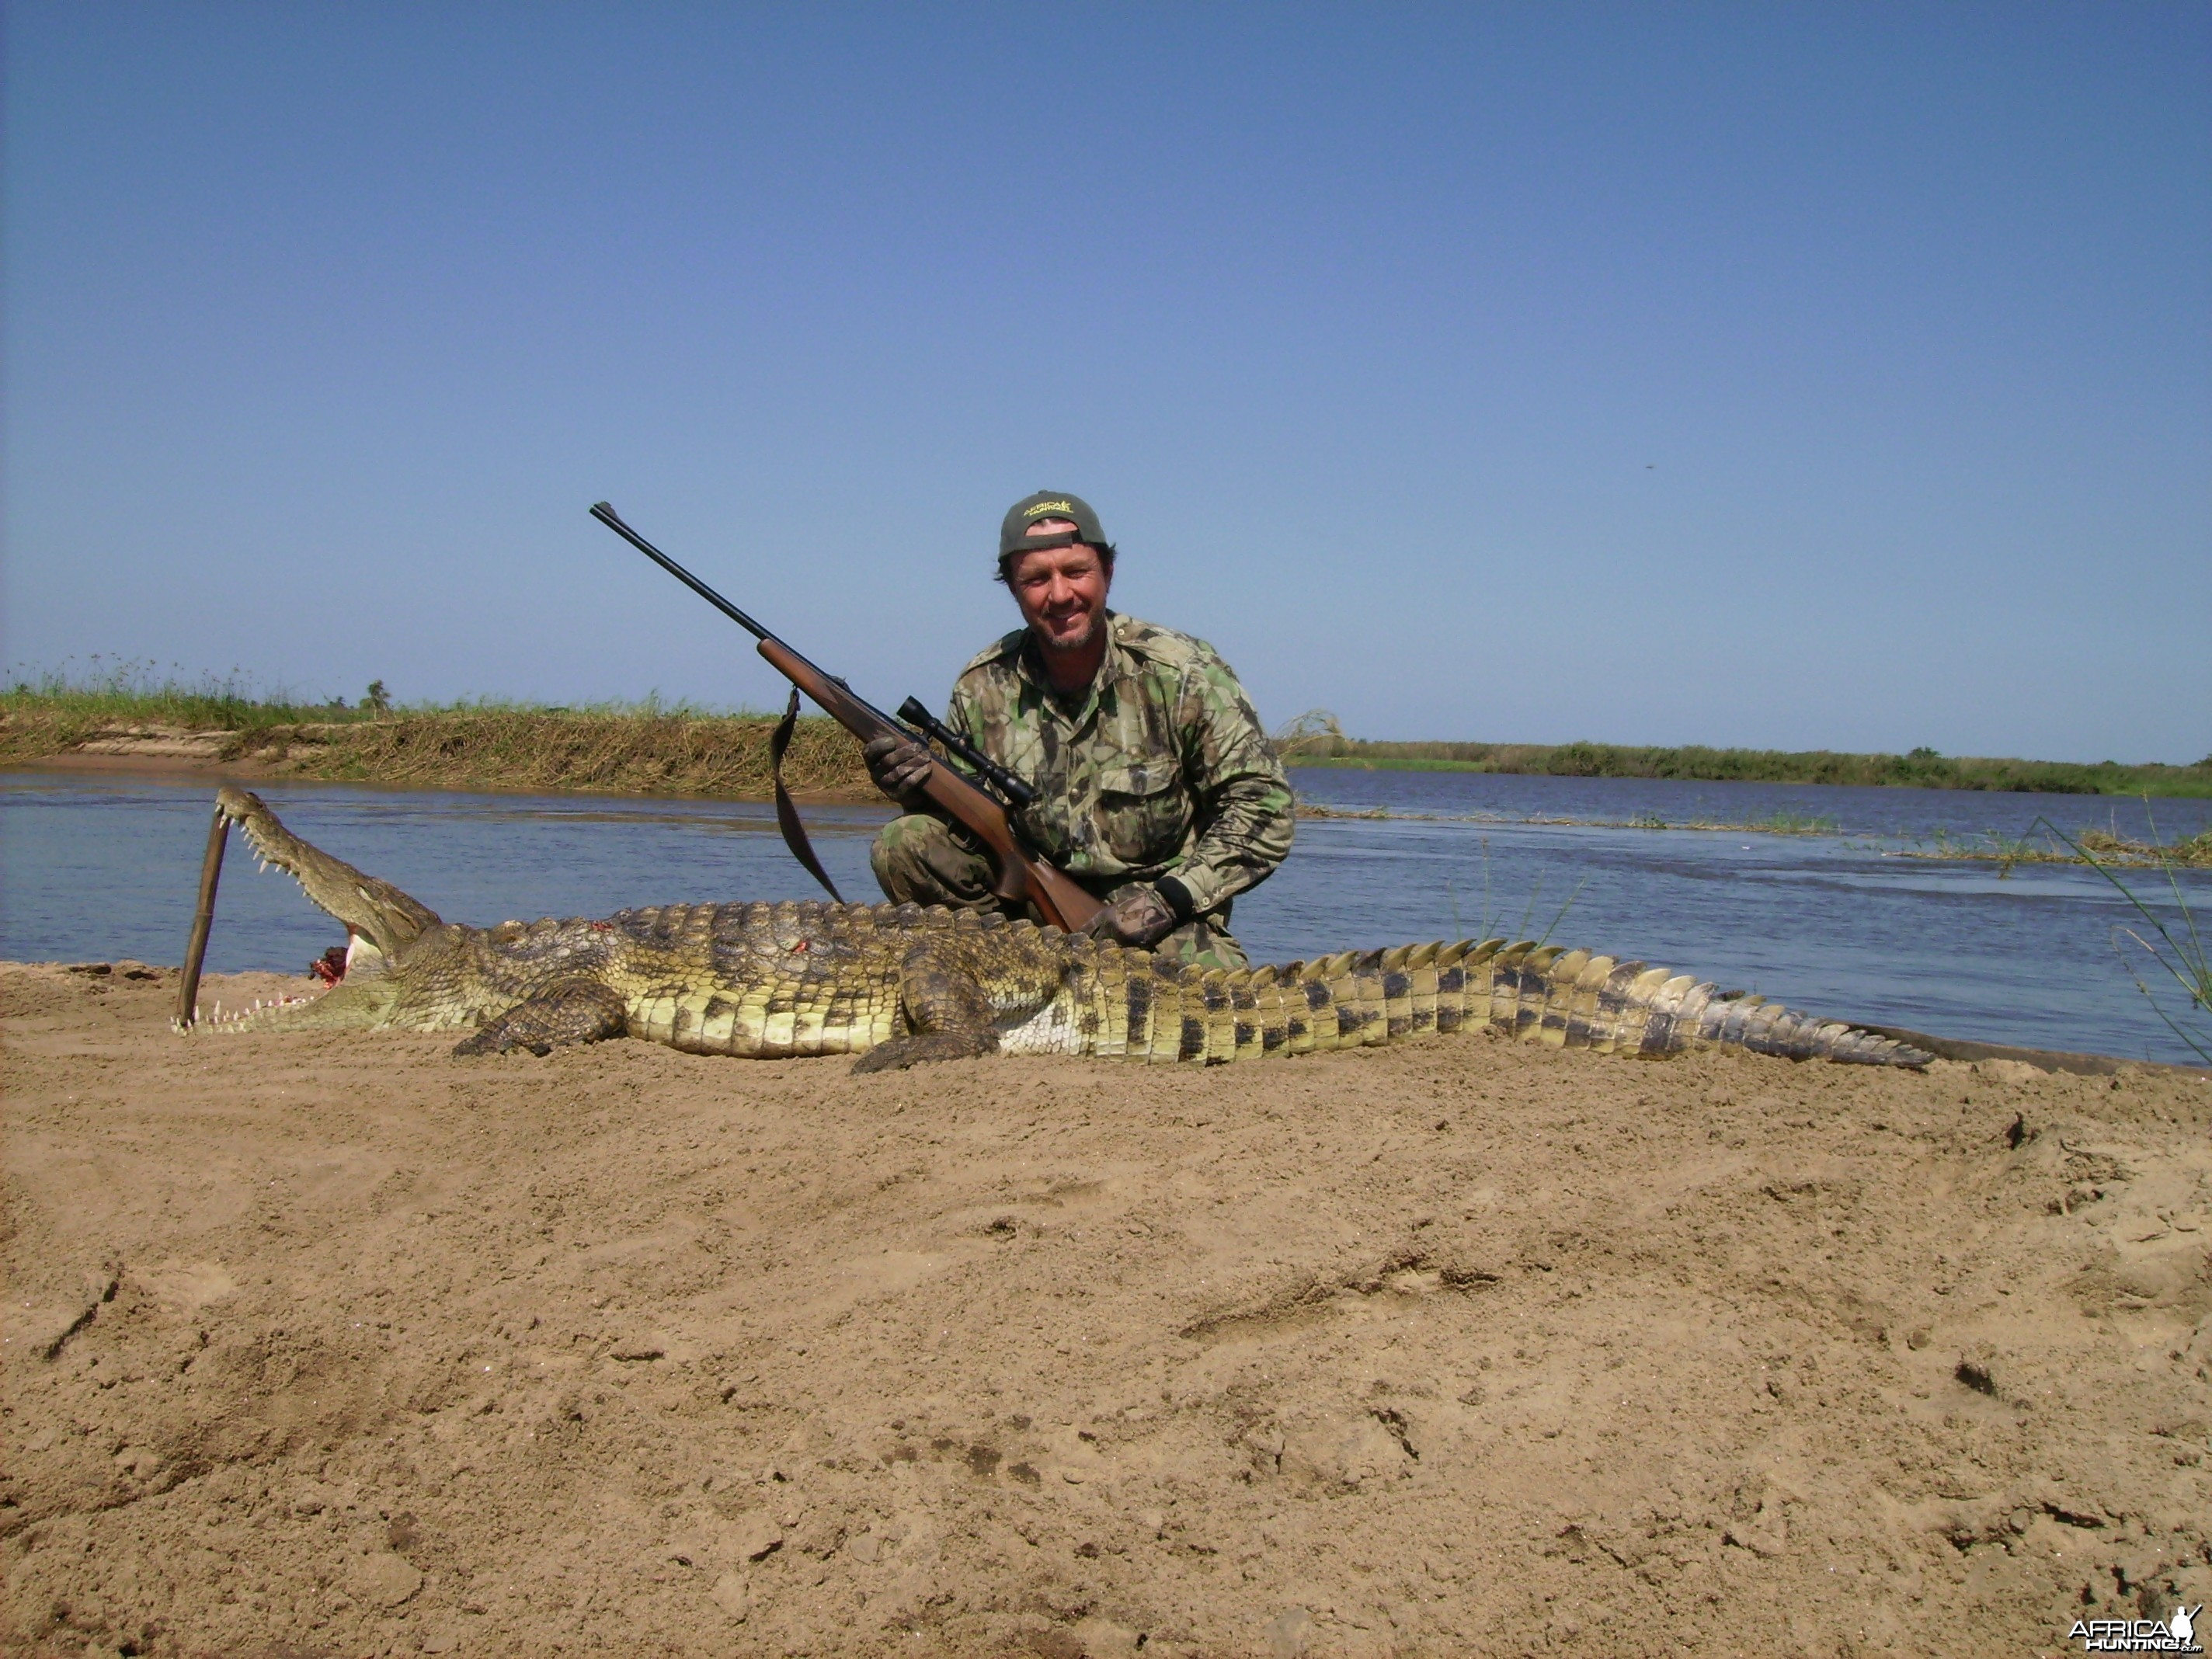 frank berbuir with mozambique croc 2011